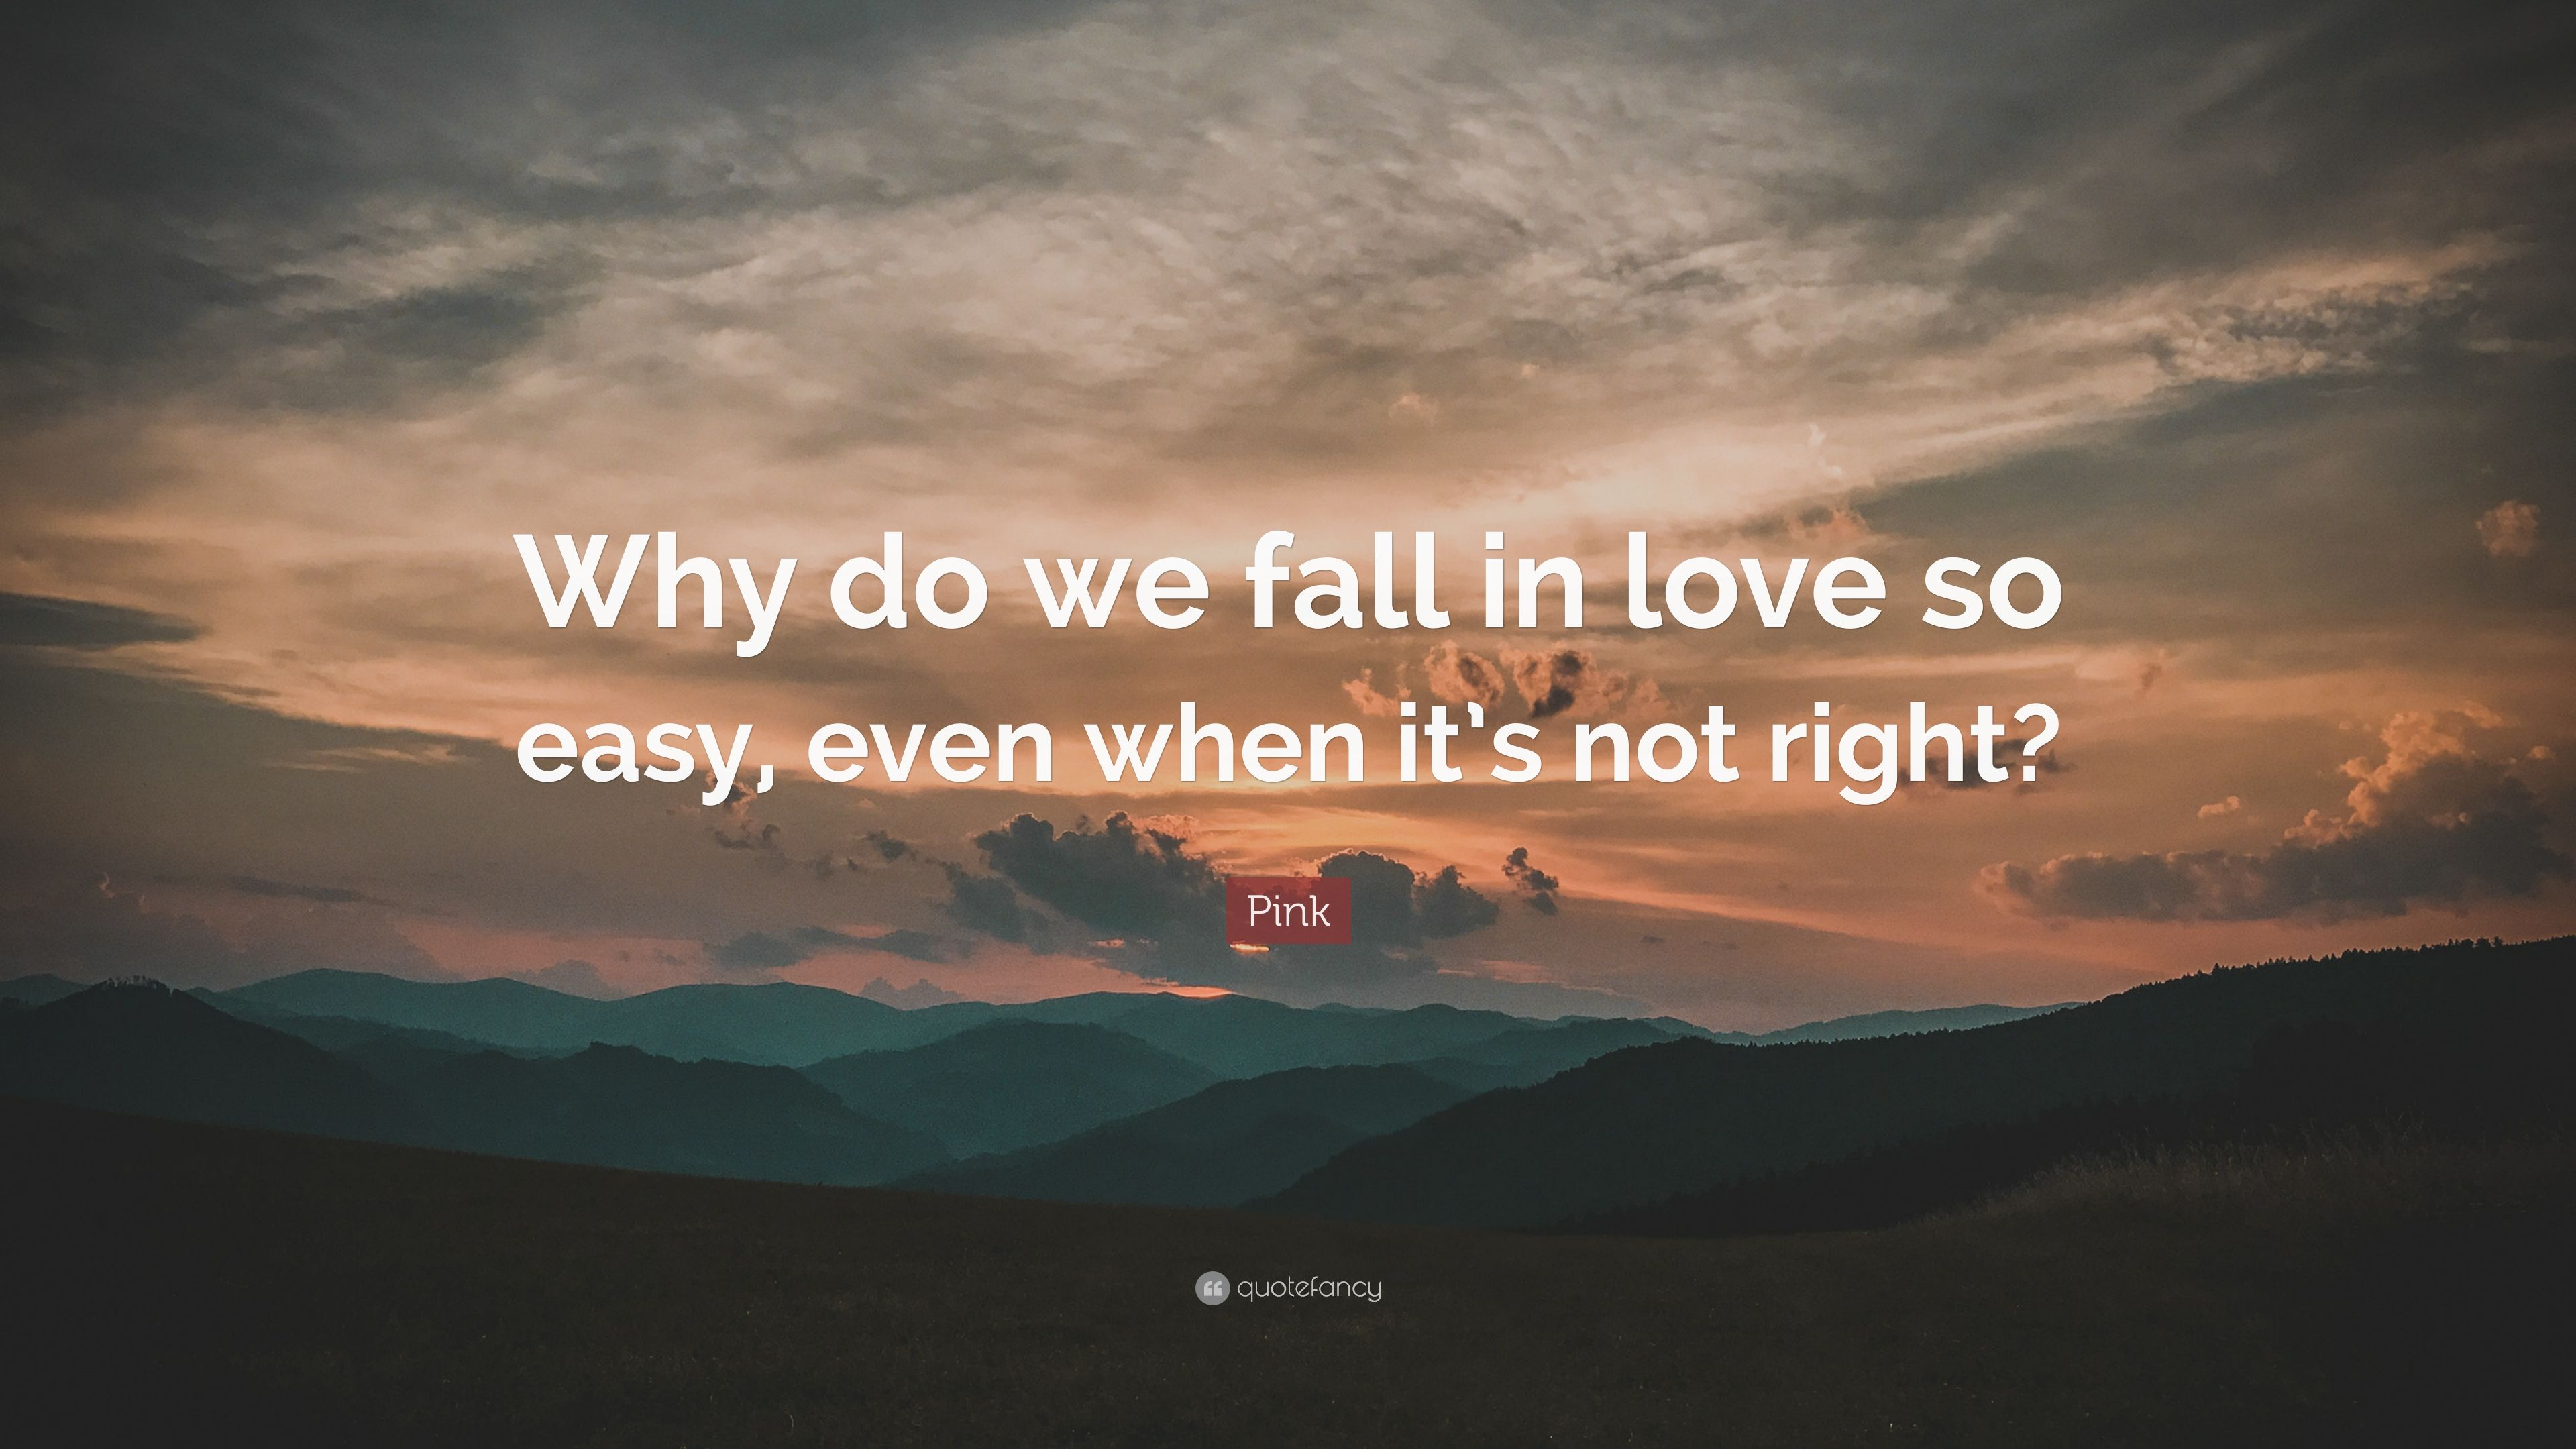 Pink Quote: Why do we fall in love so easy, even when it